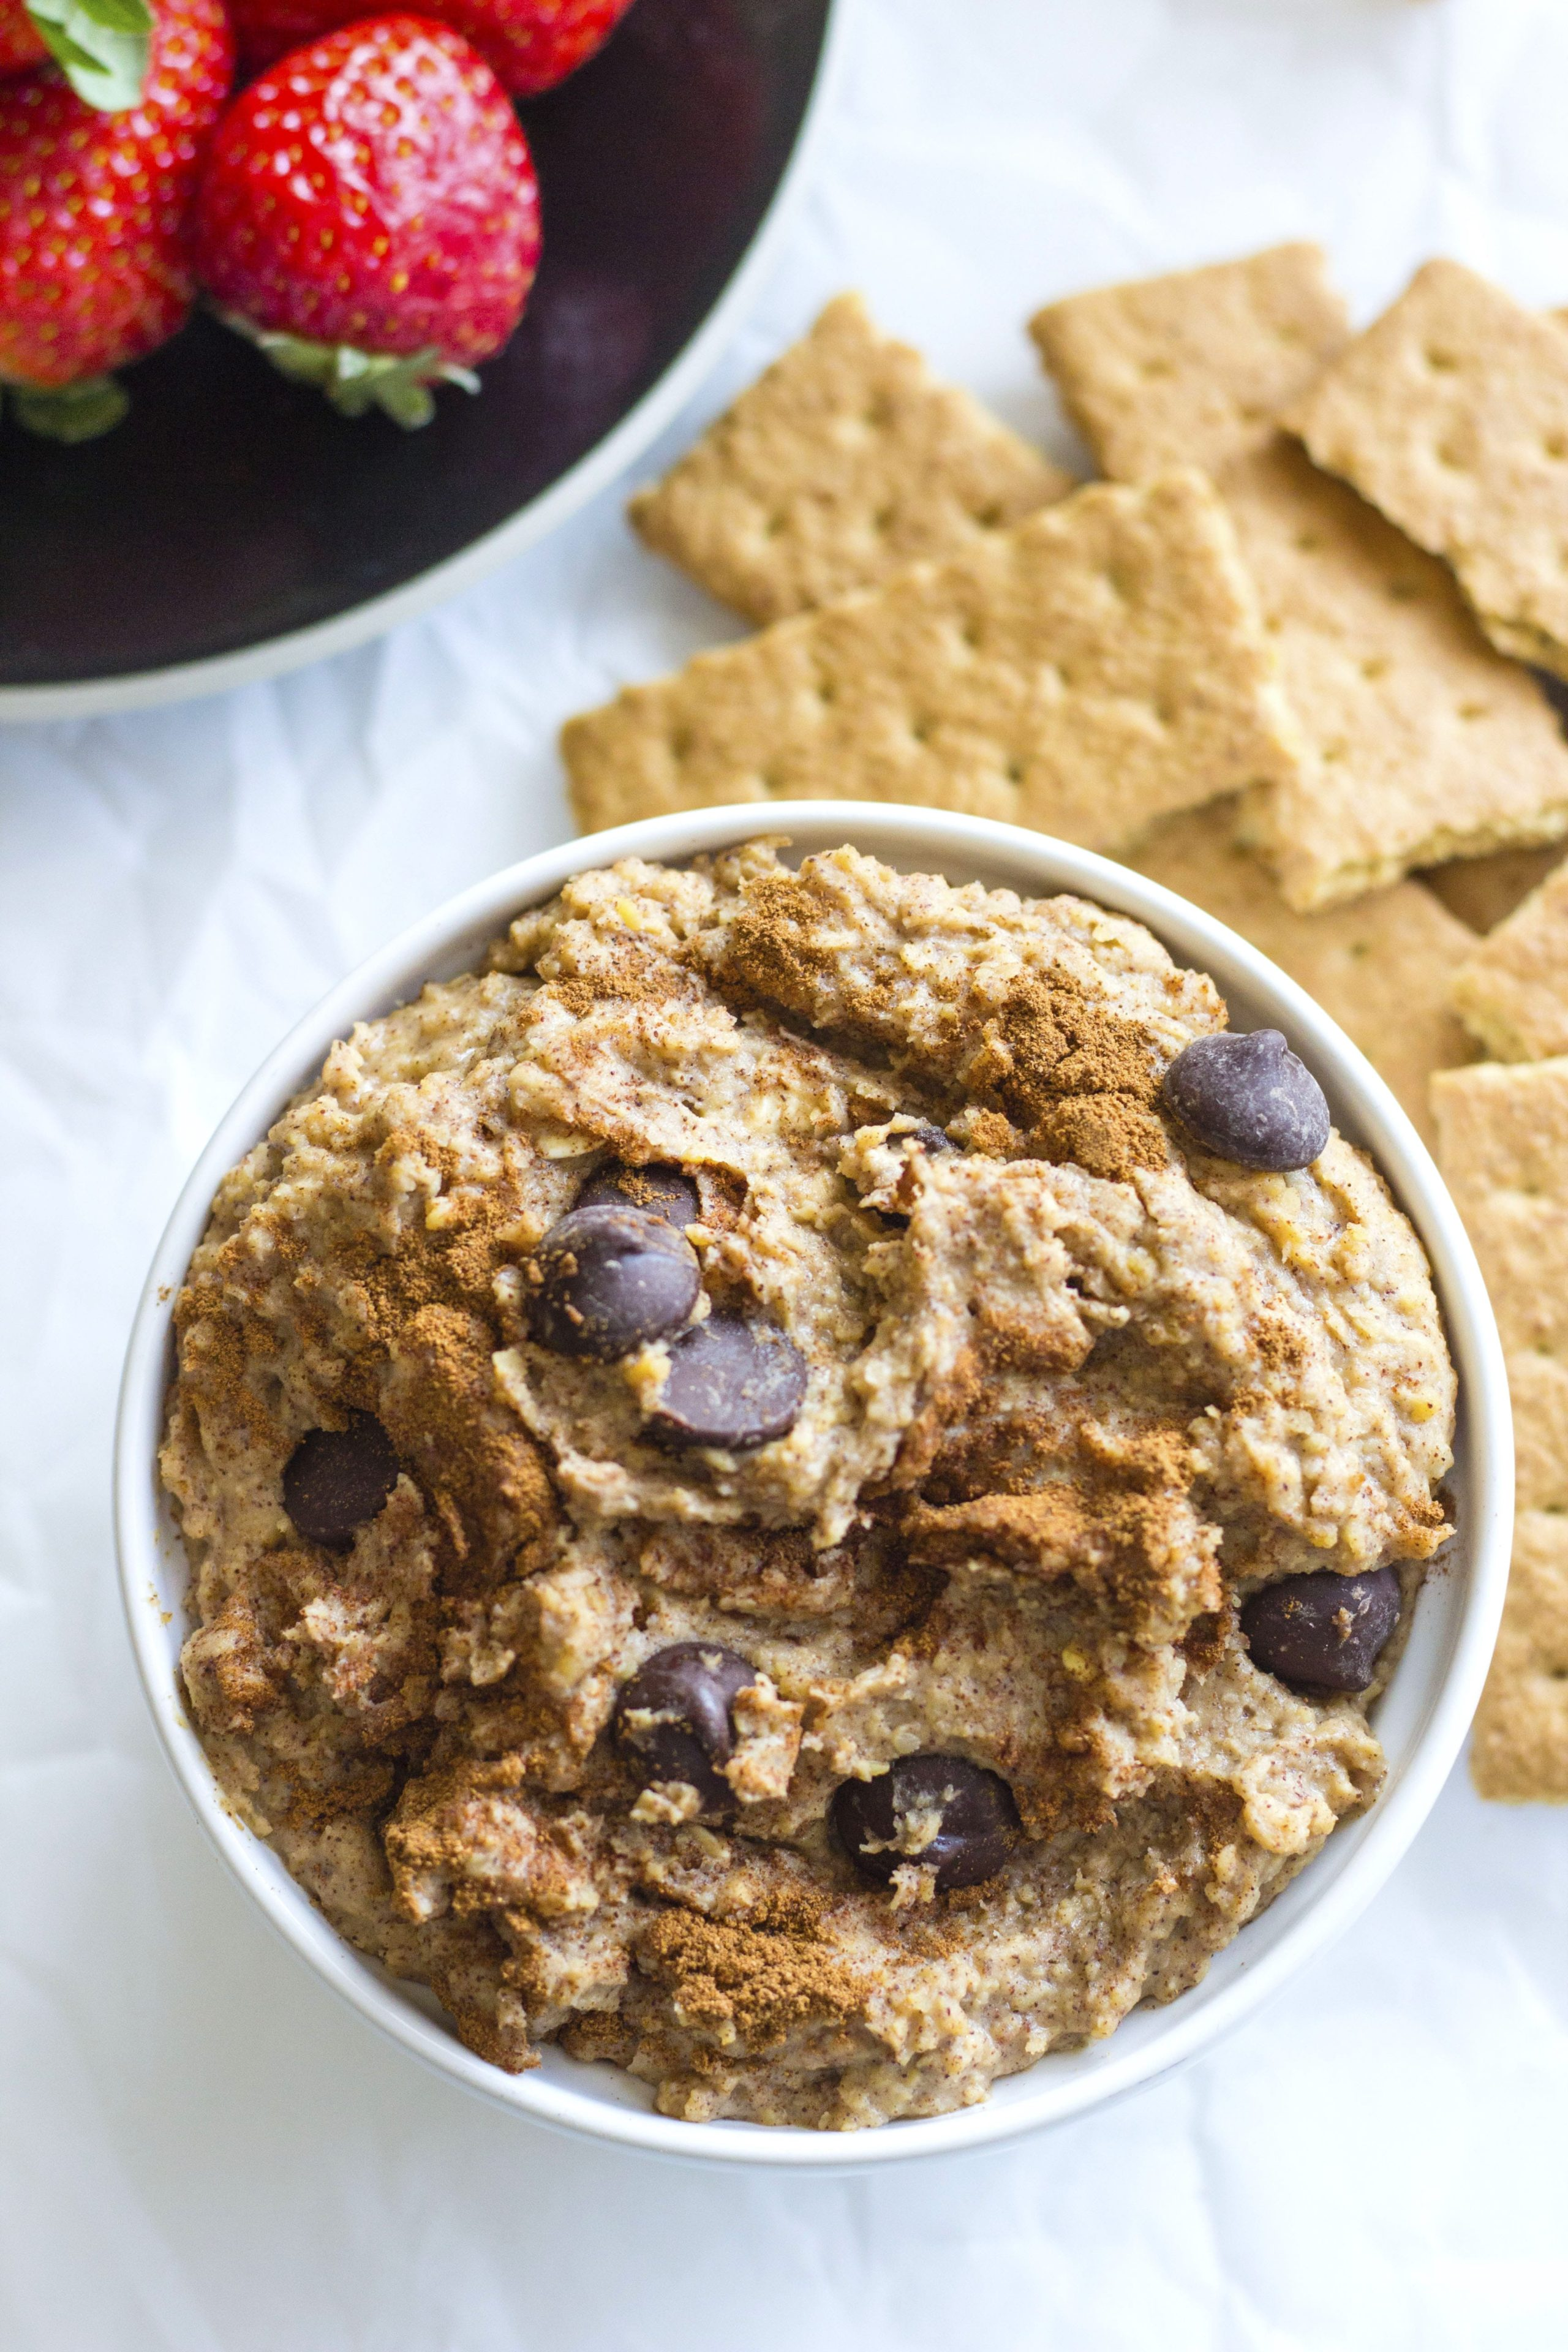 Cinnamon Chocolate Chip Chickpea Dip | The Almond Eater